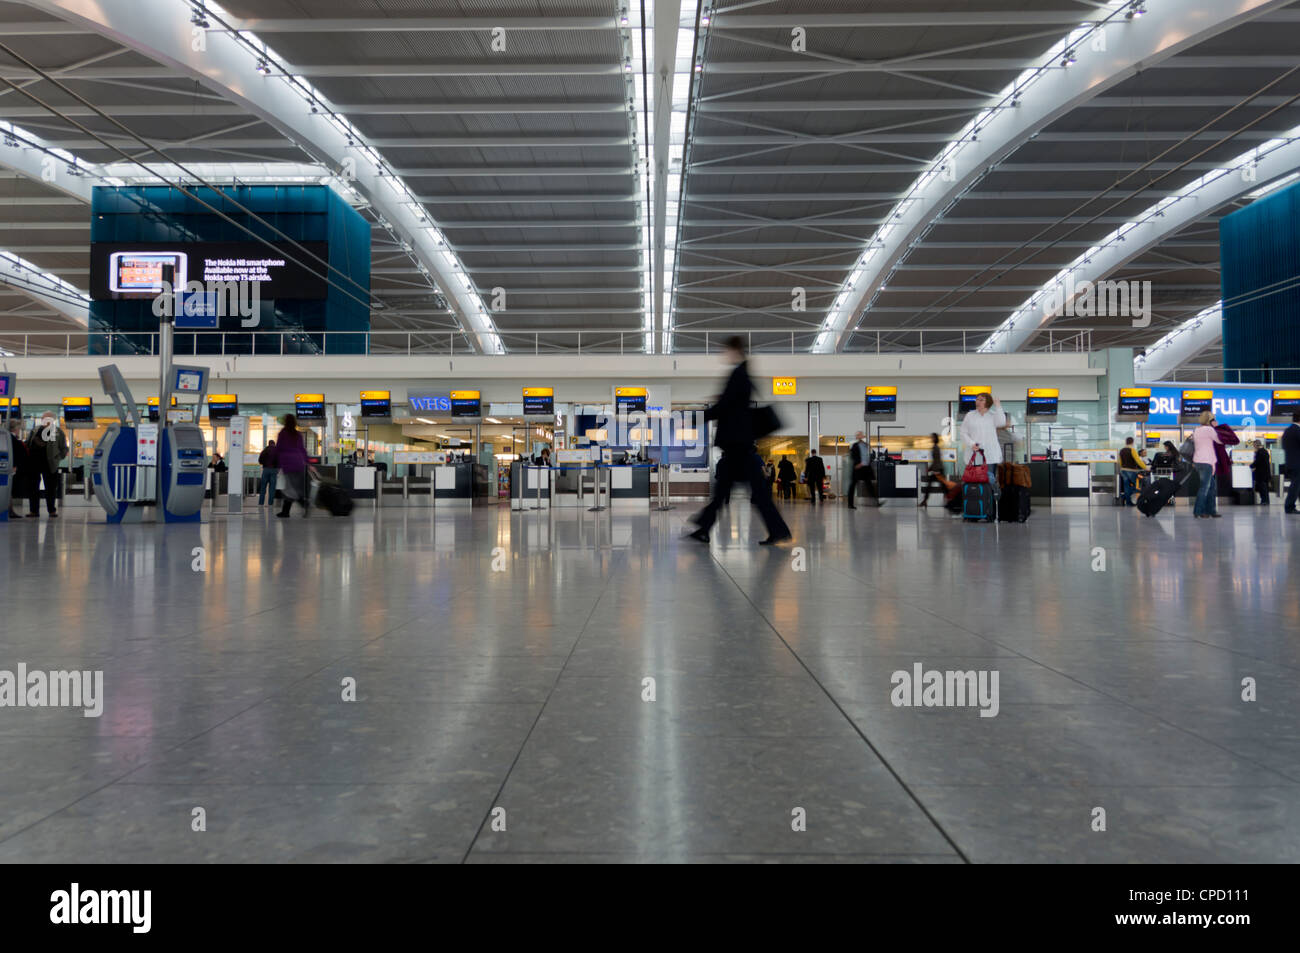 Heathrow Airport Terminal 5 interior, London, England, United Kingdom, Europe - Stock Image